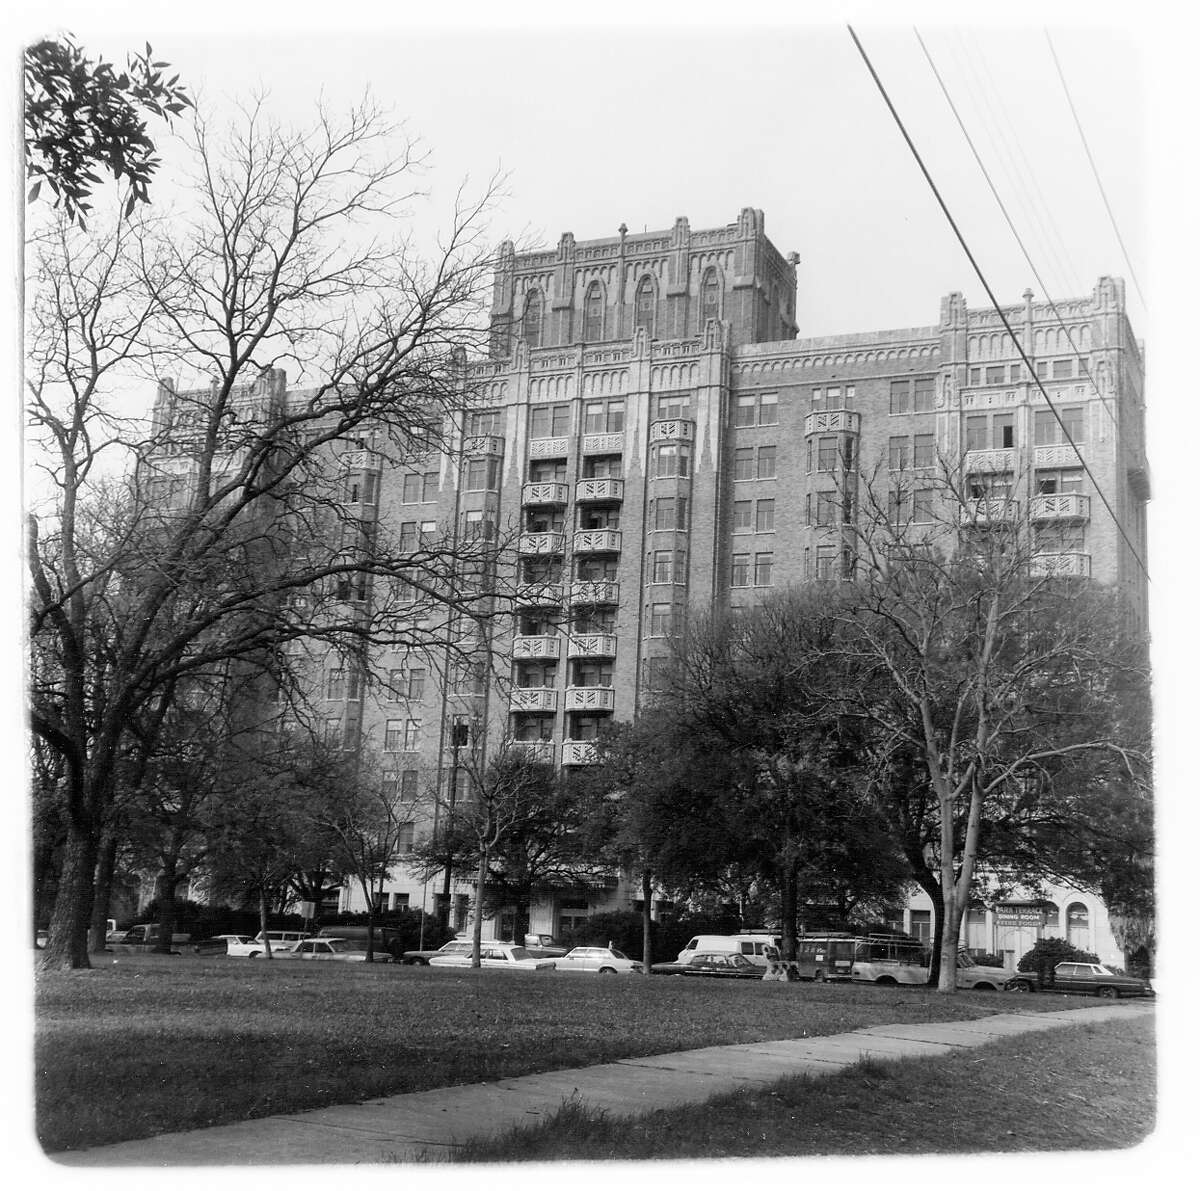 The Aurora Apartments at 509 Howard St. were designed by architect Richard Vander Straten. The 10-story, neo-Gothic structure was built to last, of brick, terra-cotta and reinforced concrete steel.